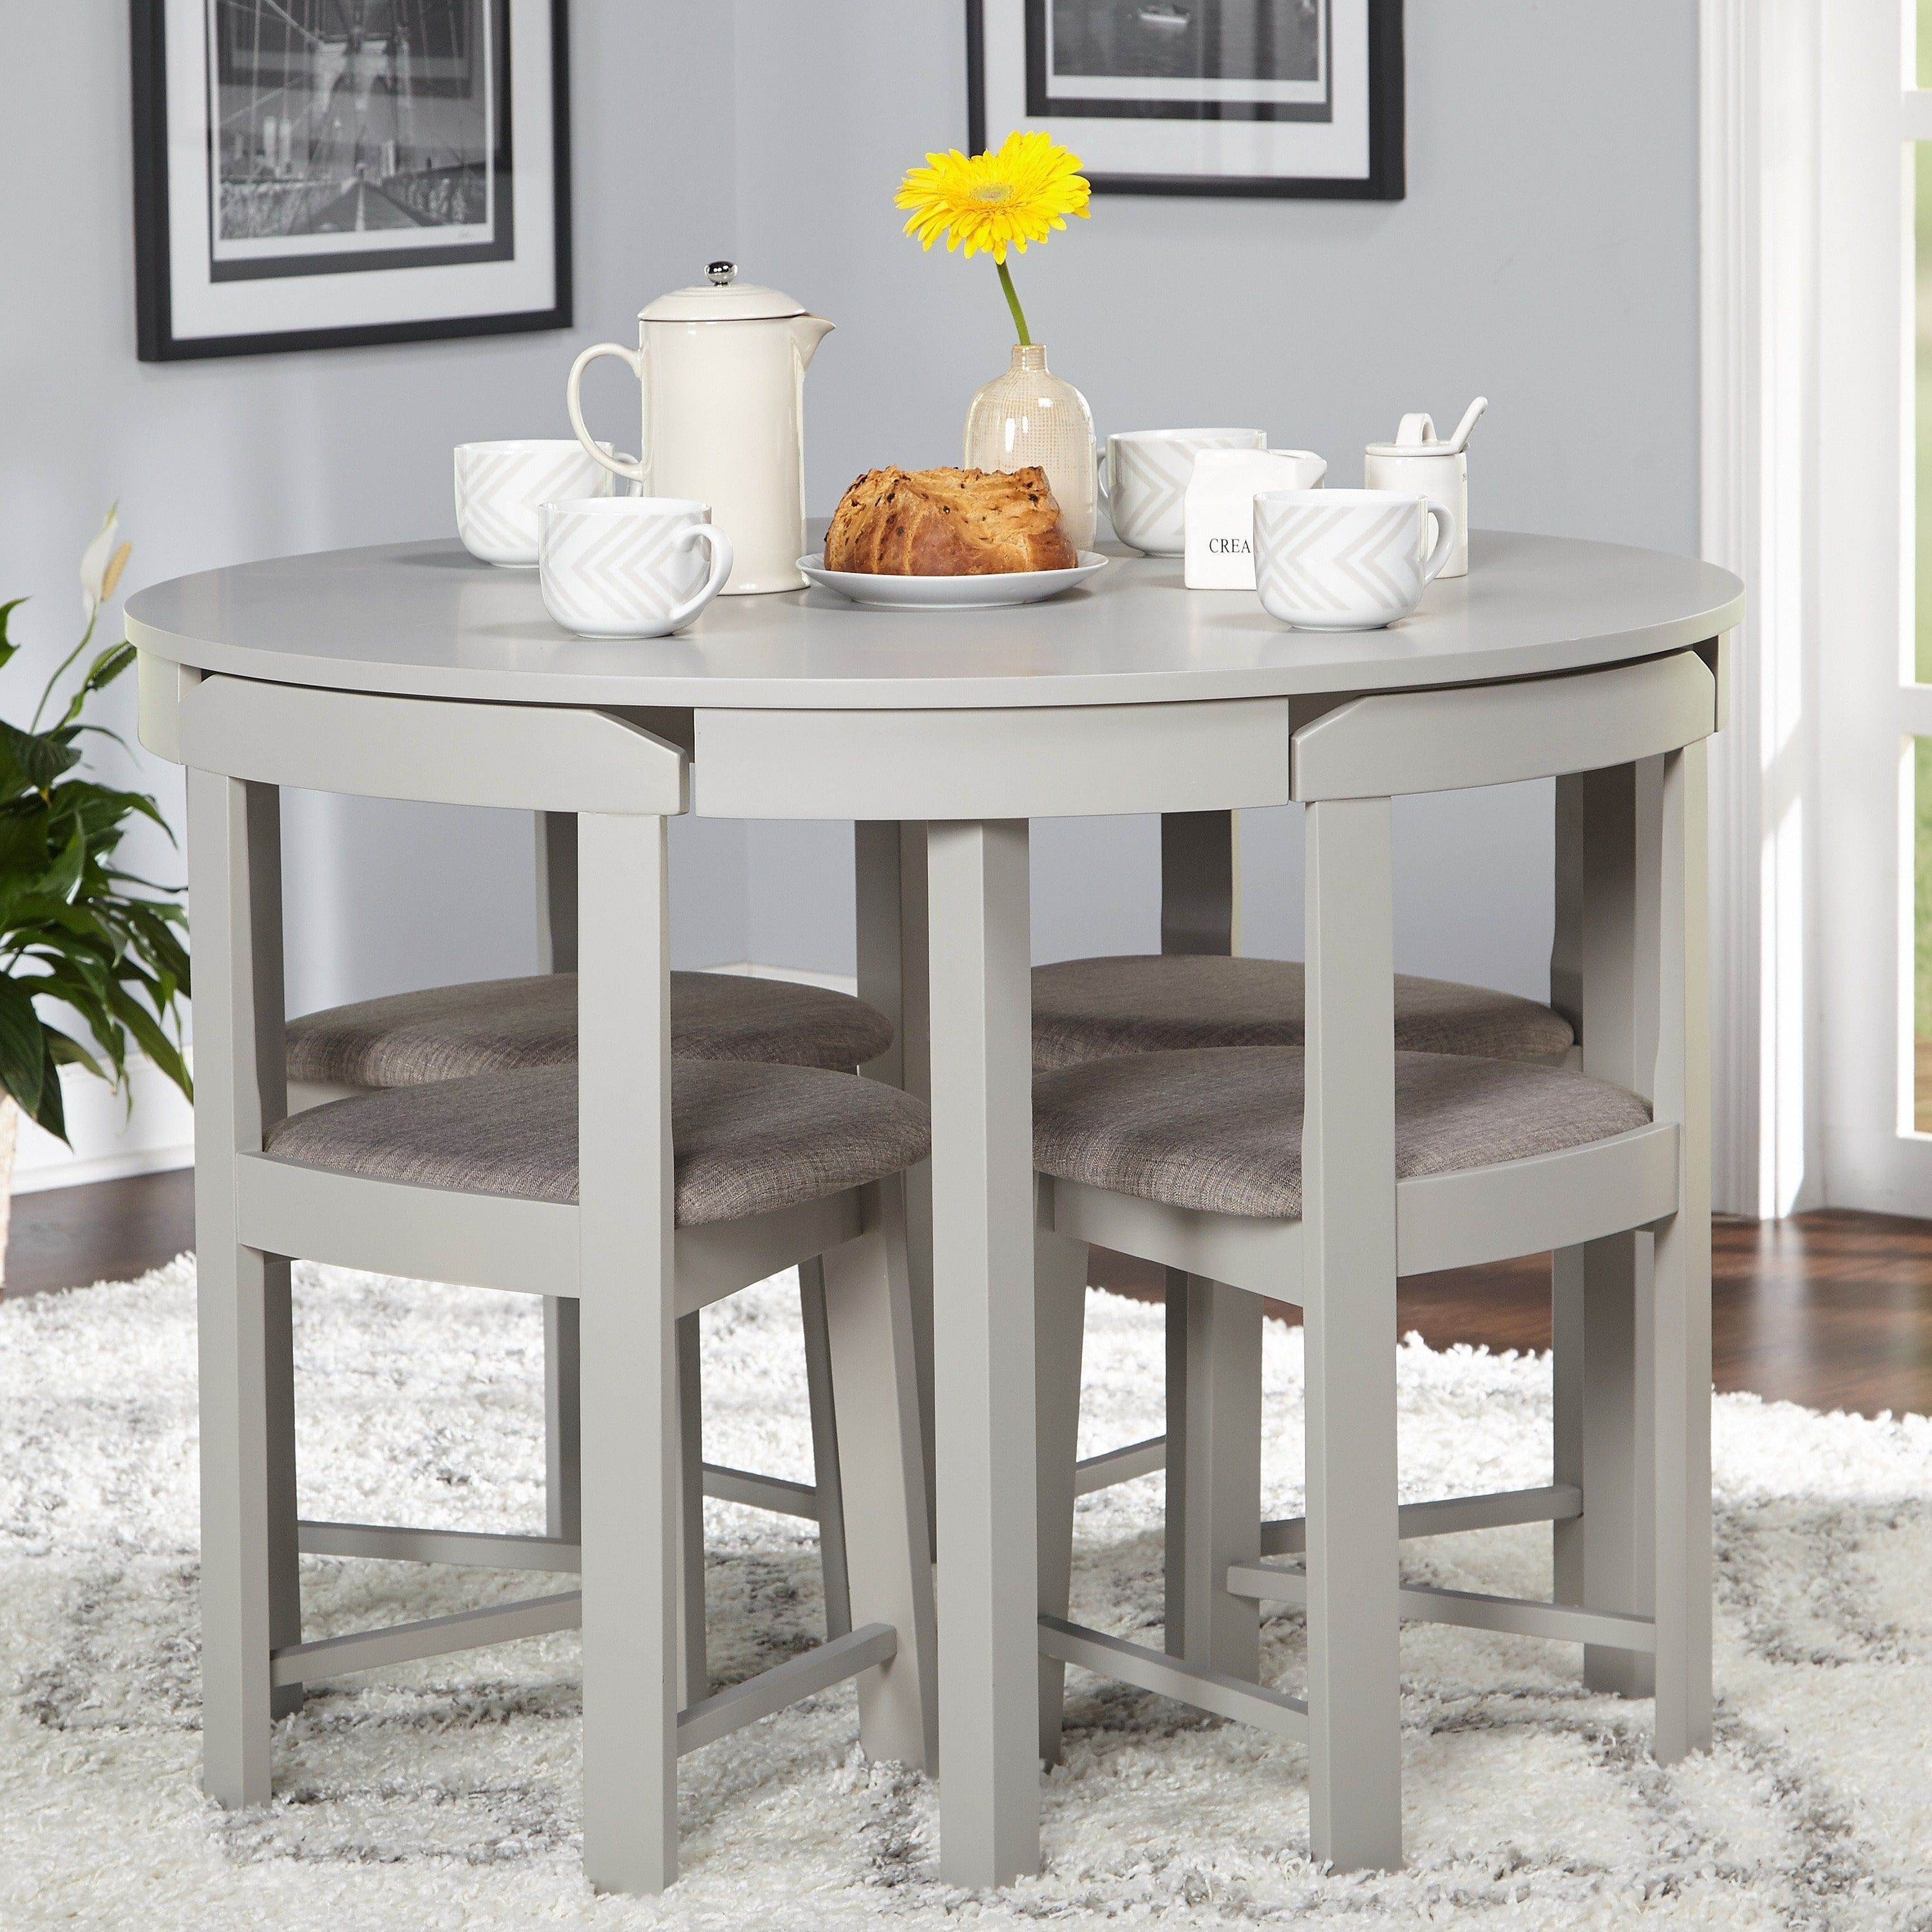 Overstock Com Online Shopping Bedding Furniture Electronics Jewelry Clothing More Space Saving Dining Table Dining Room Small Round Dining Room